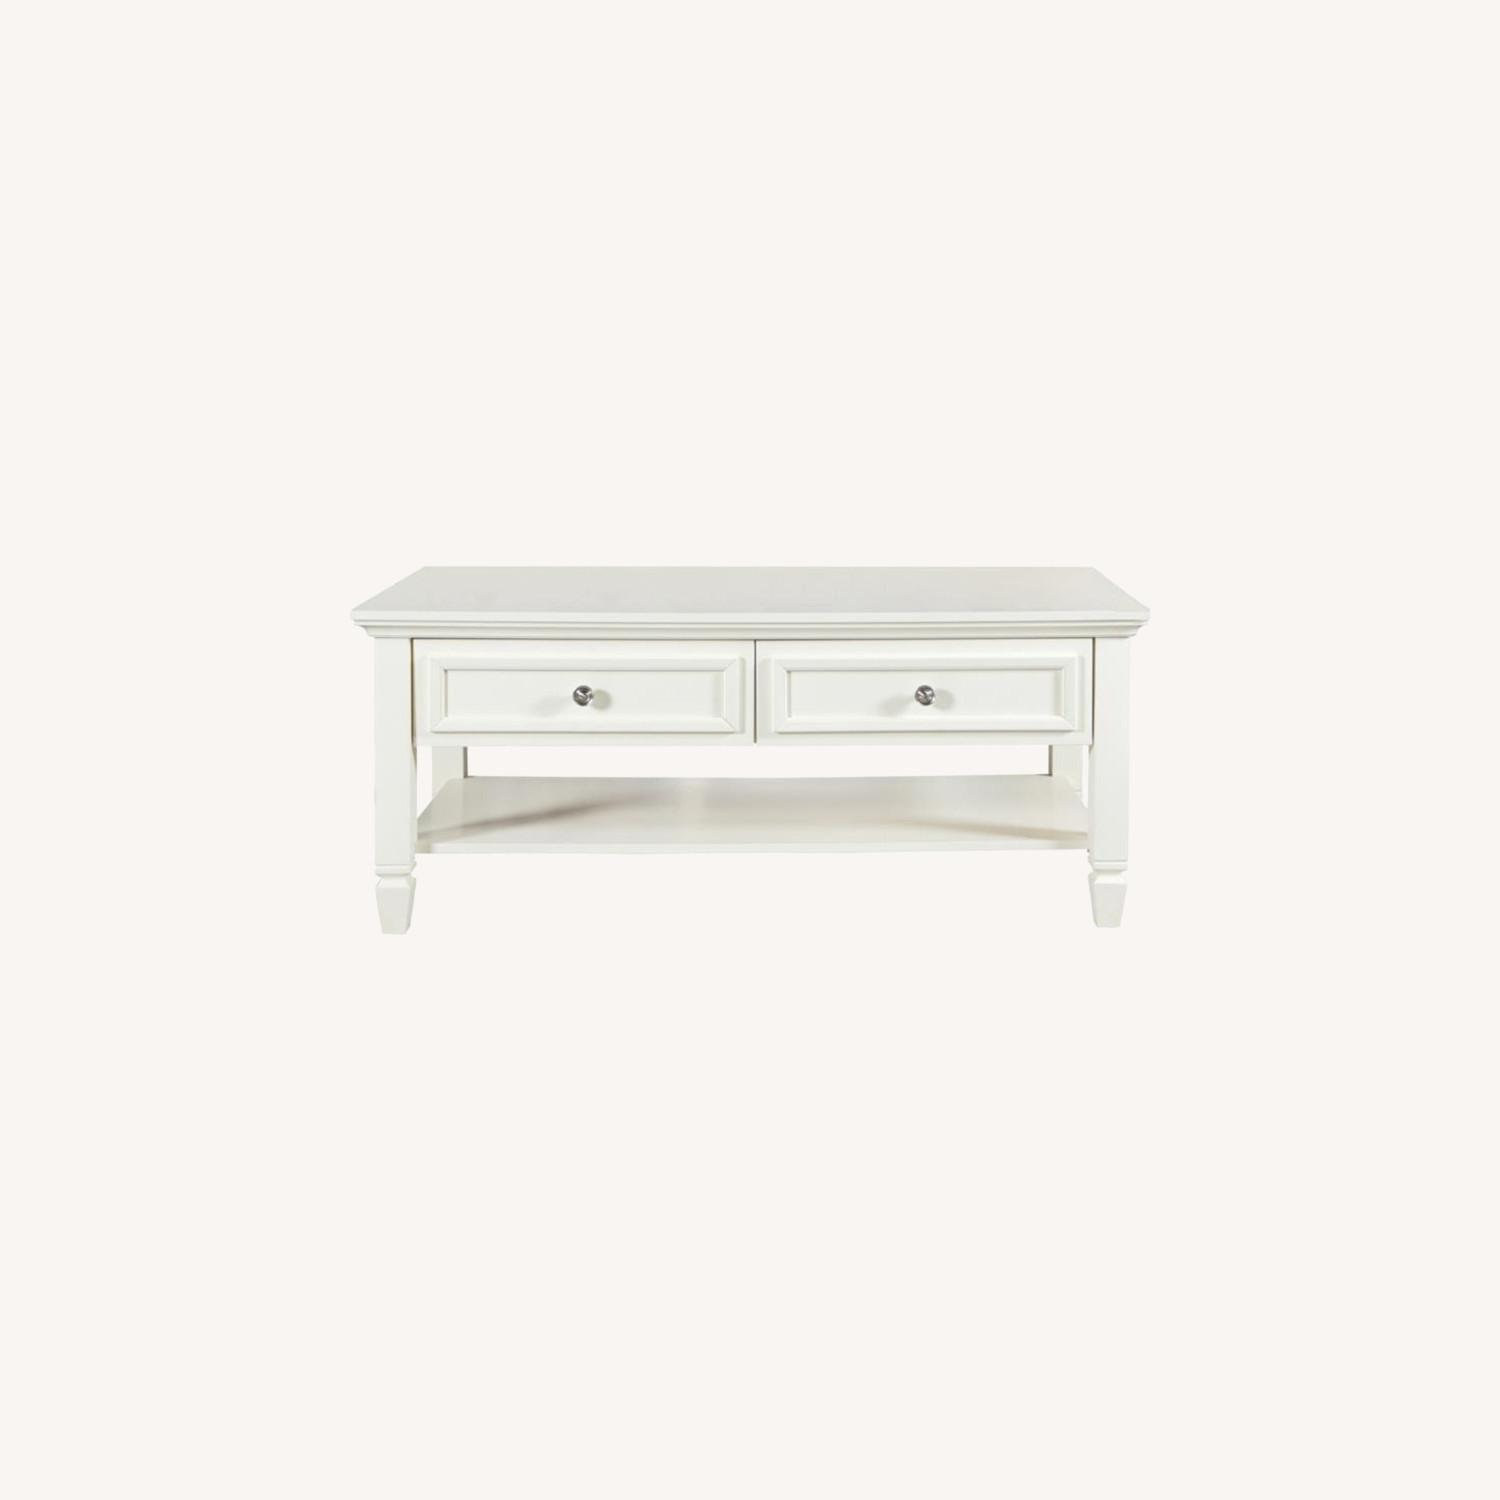 Coffee Table In Brushed Nickel W/ 2 Drawers - image-4